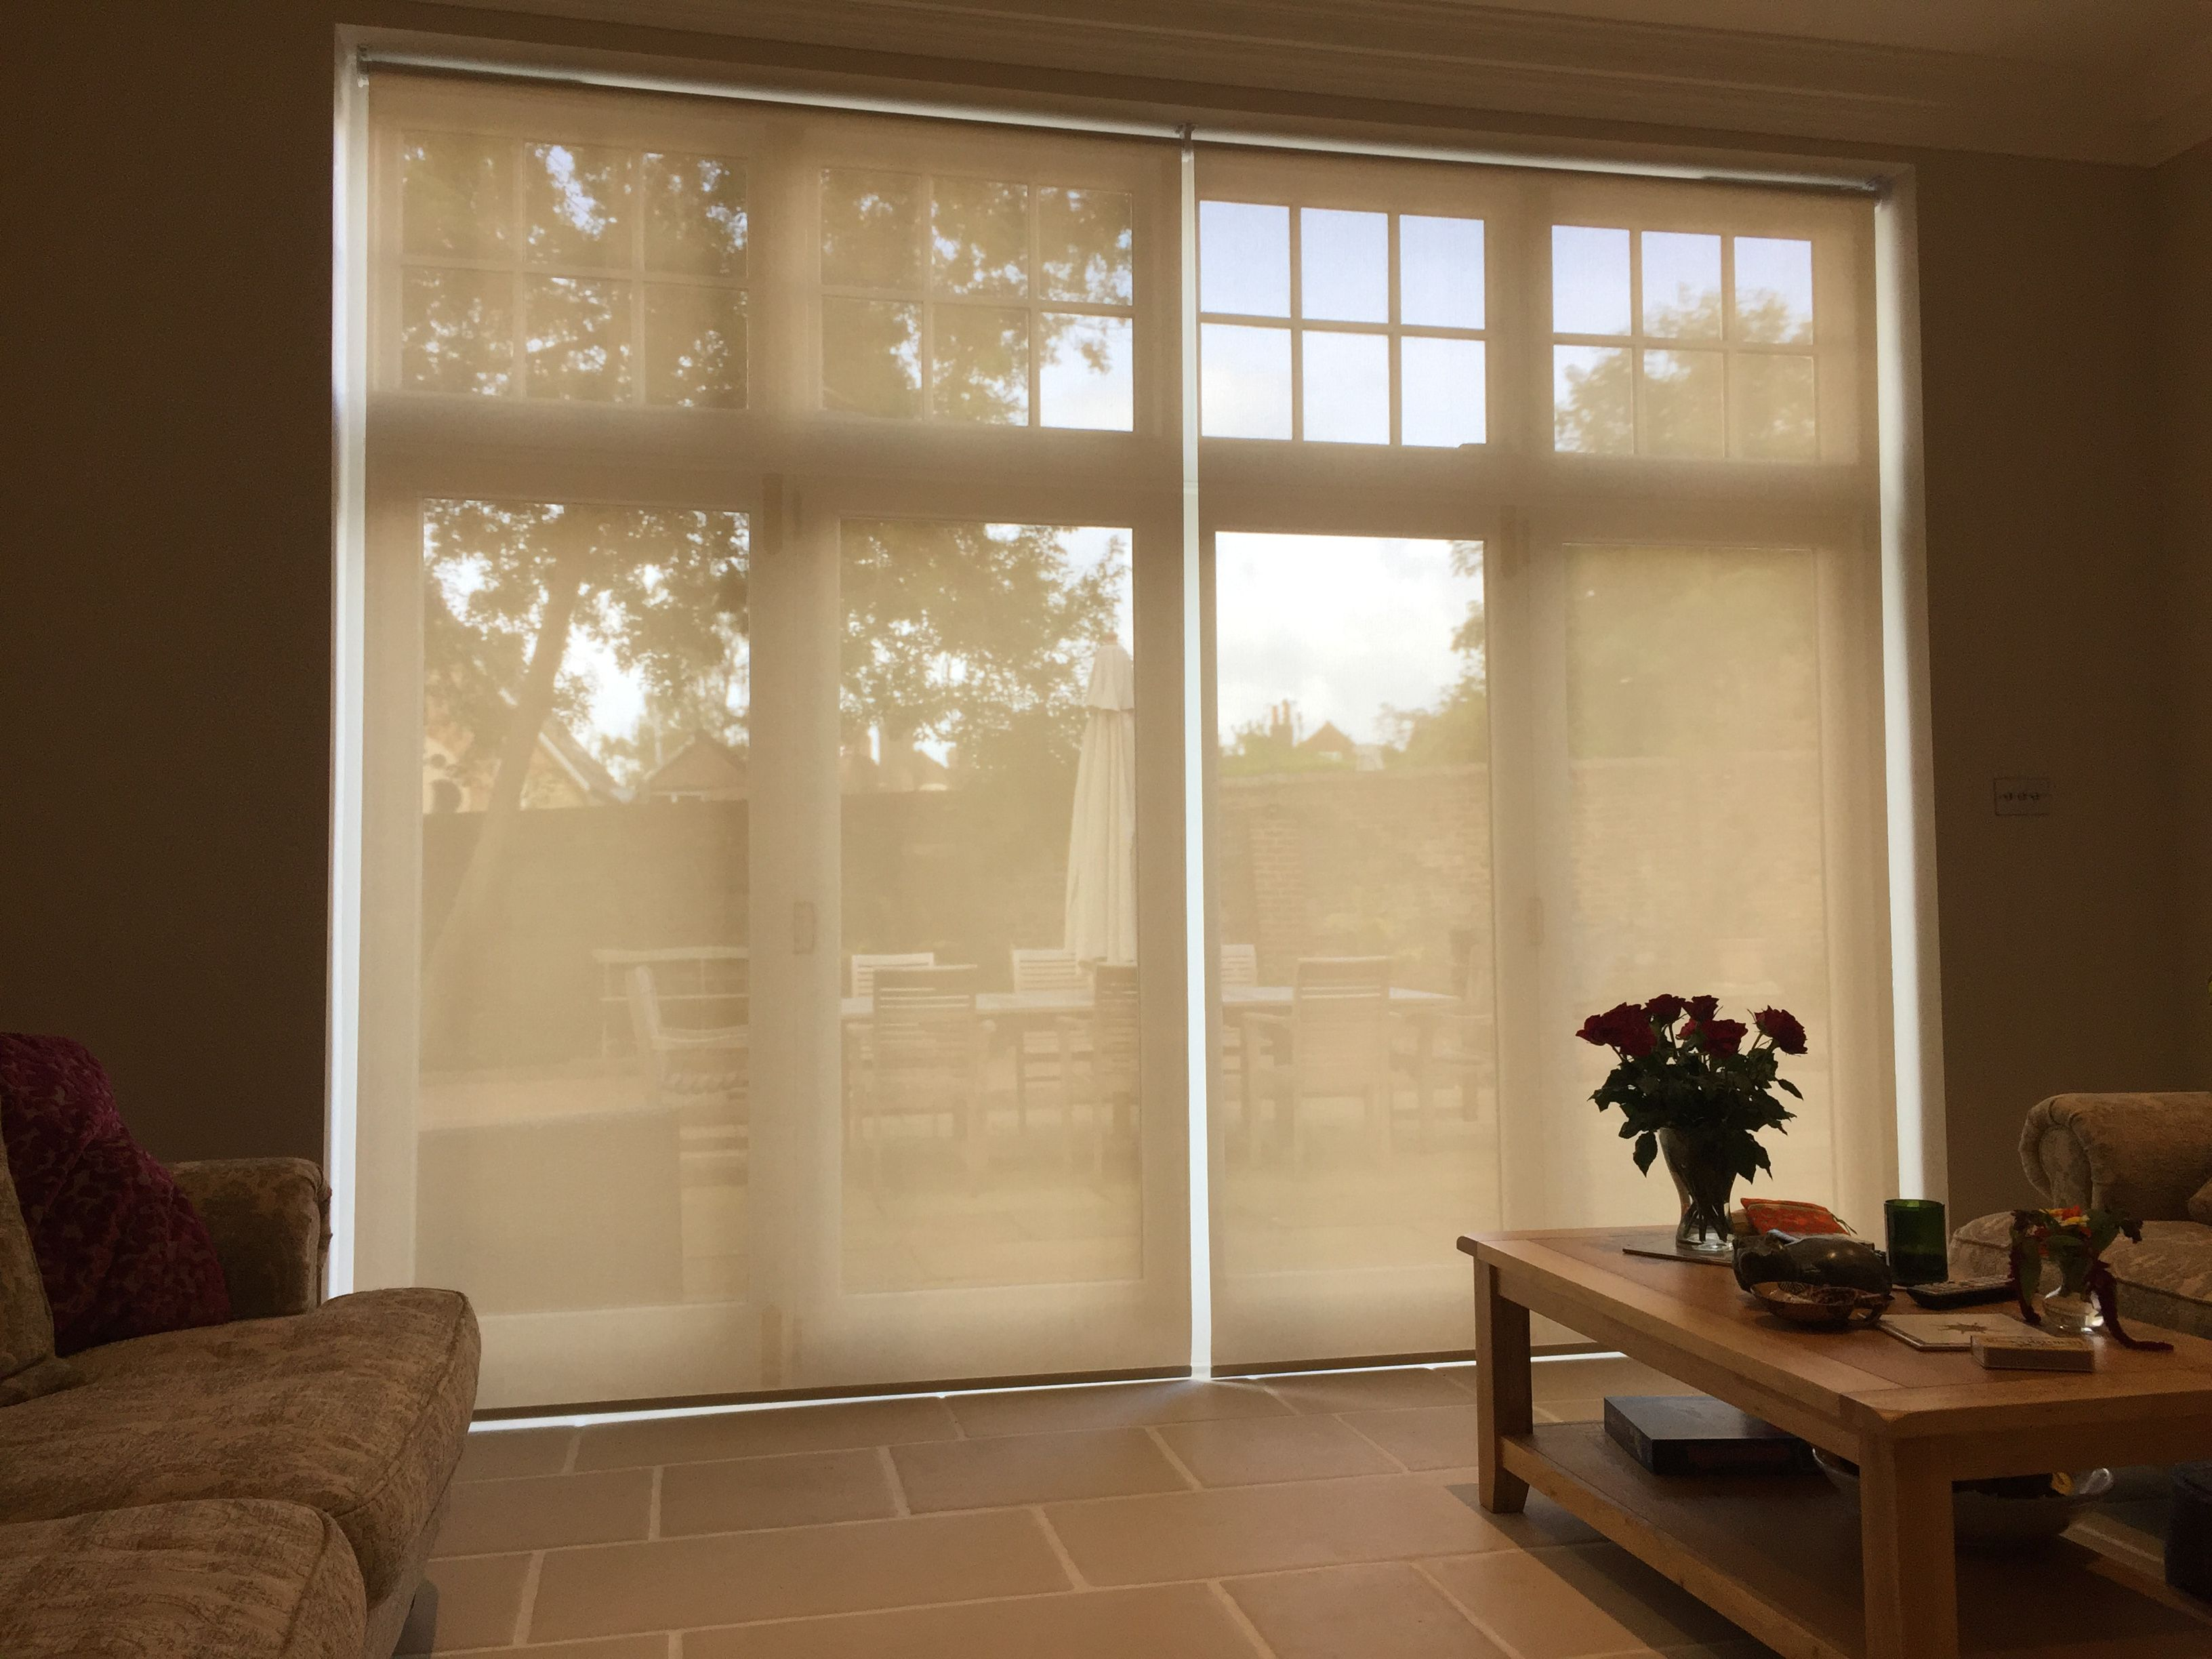 Diy Automatic Curtains Sunscreen Roller Blinds Fitted To French Doors In Living